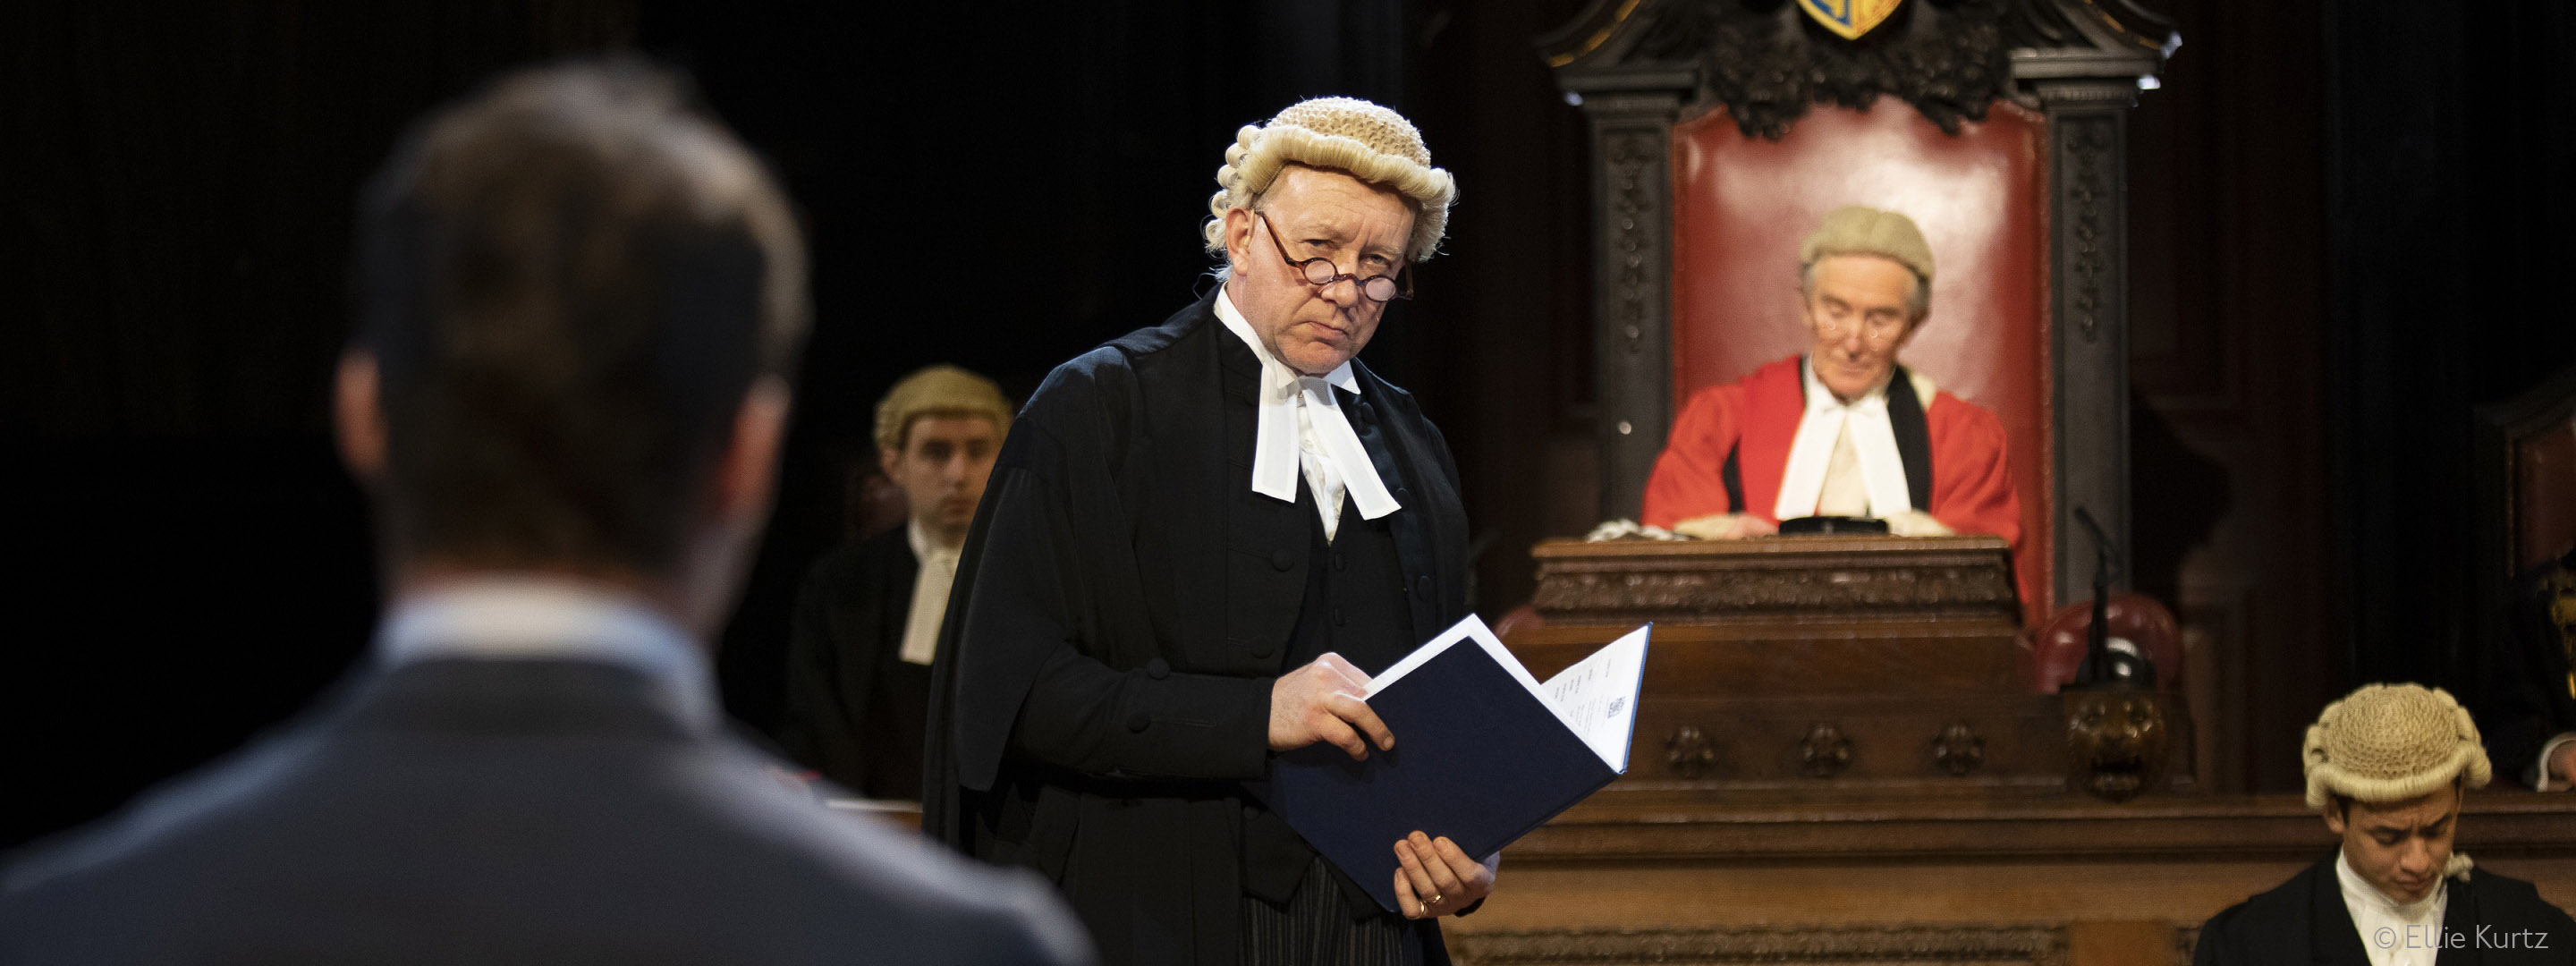 A judge in a courtroom